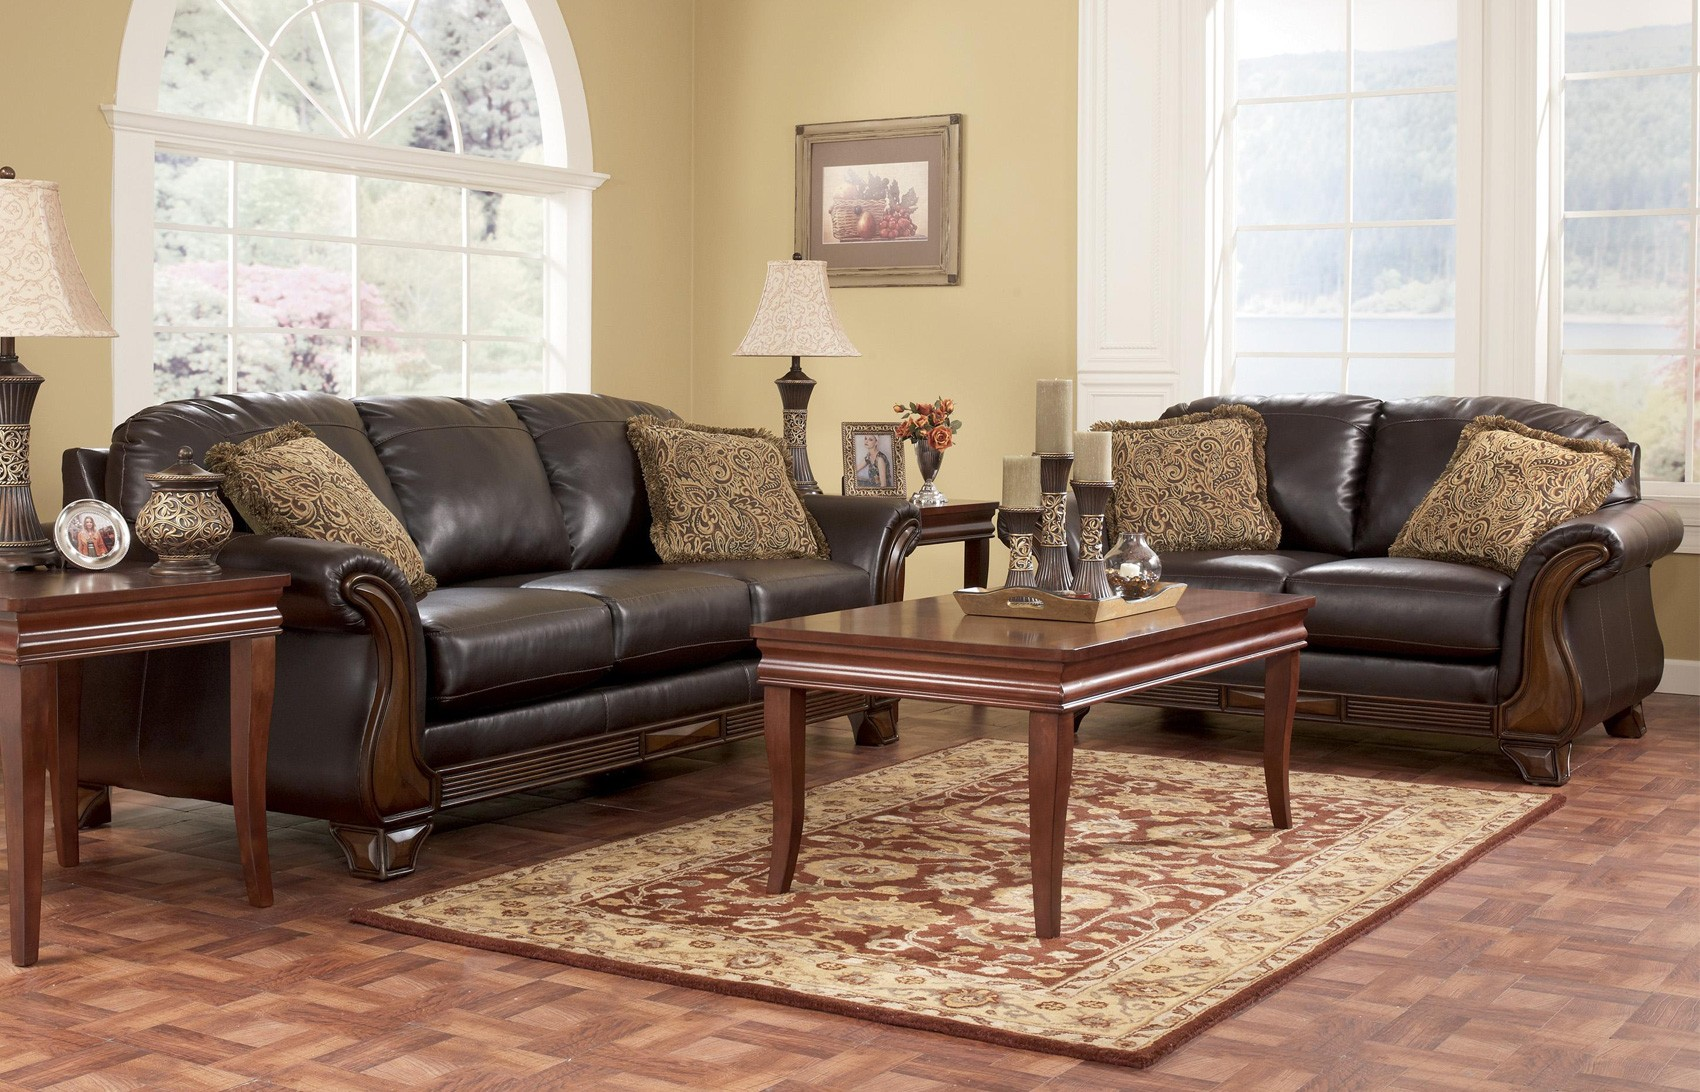 set living room furniture furniture living room set for 999 16460